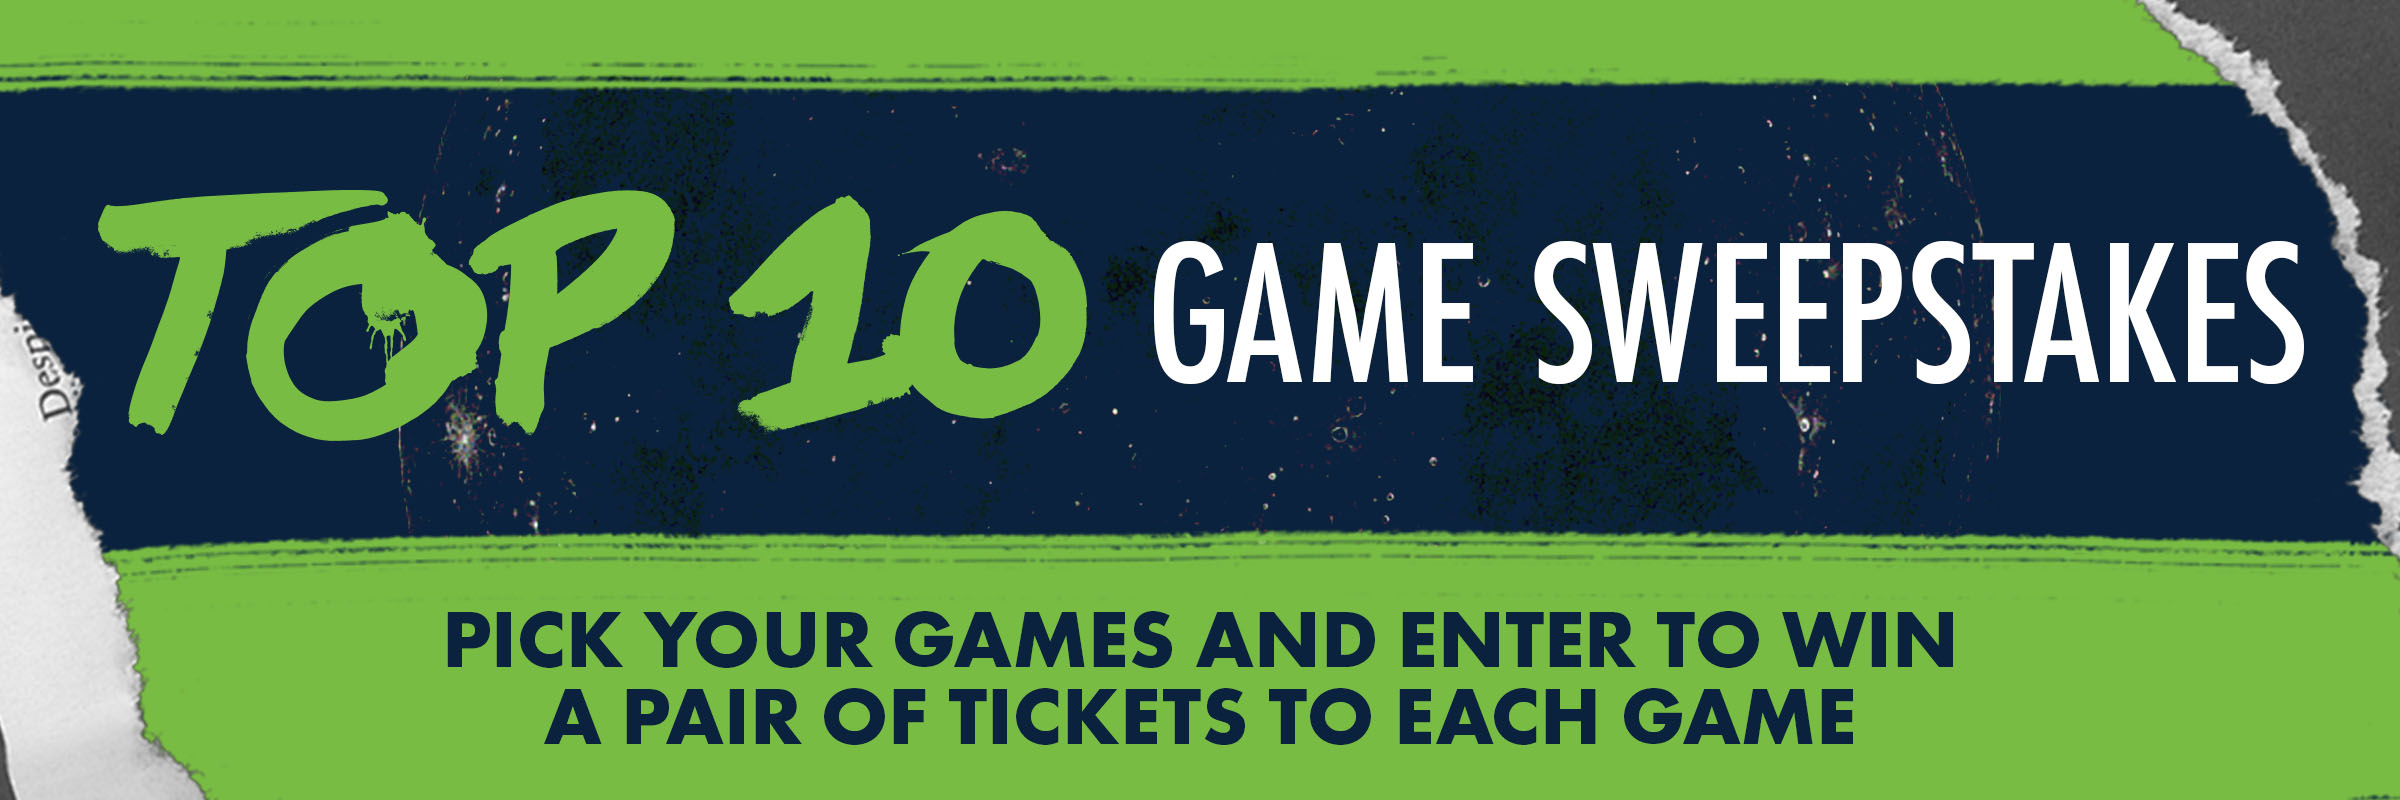 Top 10 Game Sweepstakes. Pick your games and enter to win a pair of tickets to each game